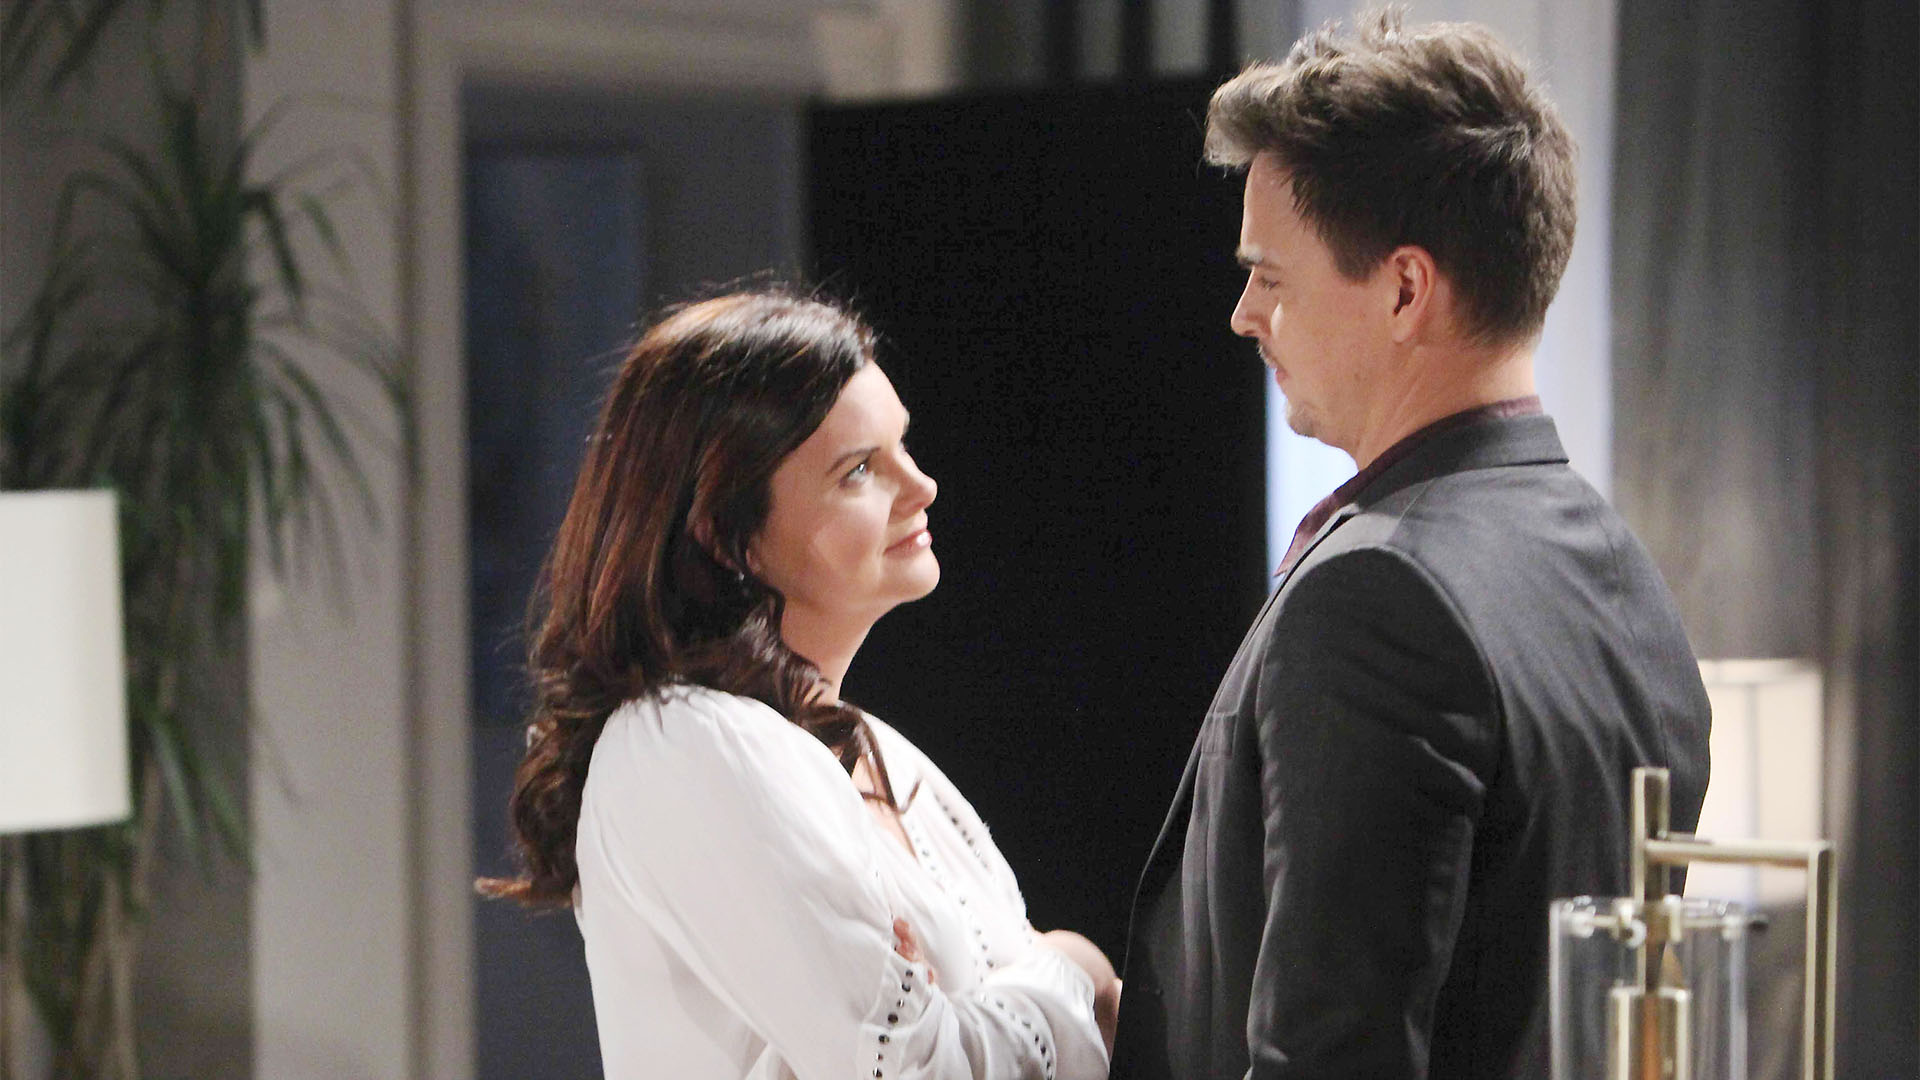 Wyatt voices his concerns to Katie about why she would prefer to attend the wedding solo.